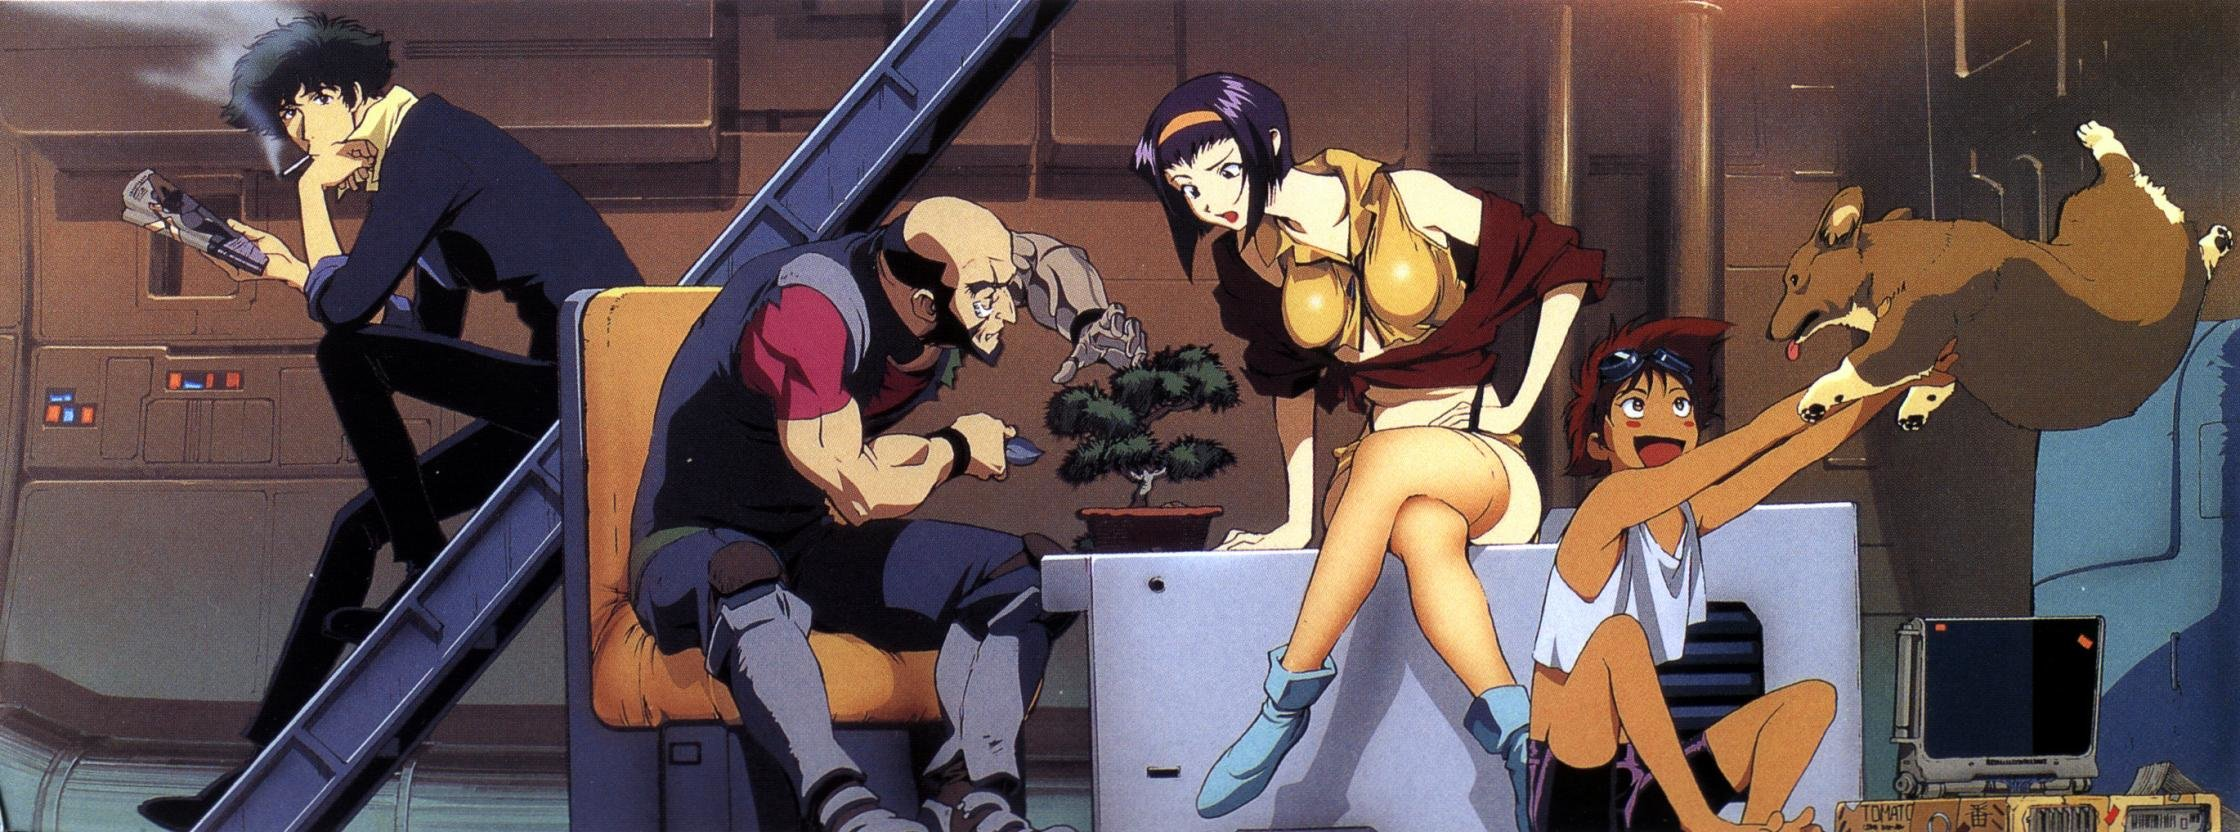 Best Cowboy Bebop wallpaper ID:54182 for High Resolution dual screen 2240x832 PC